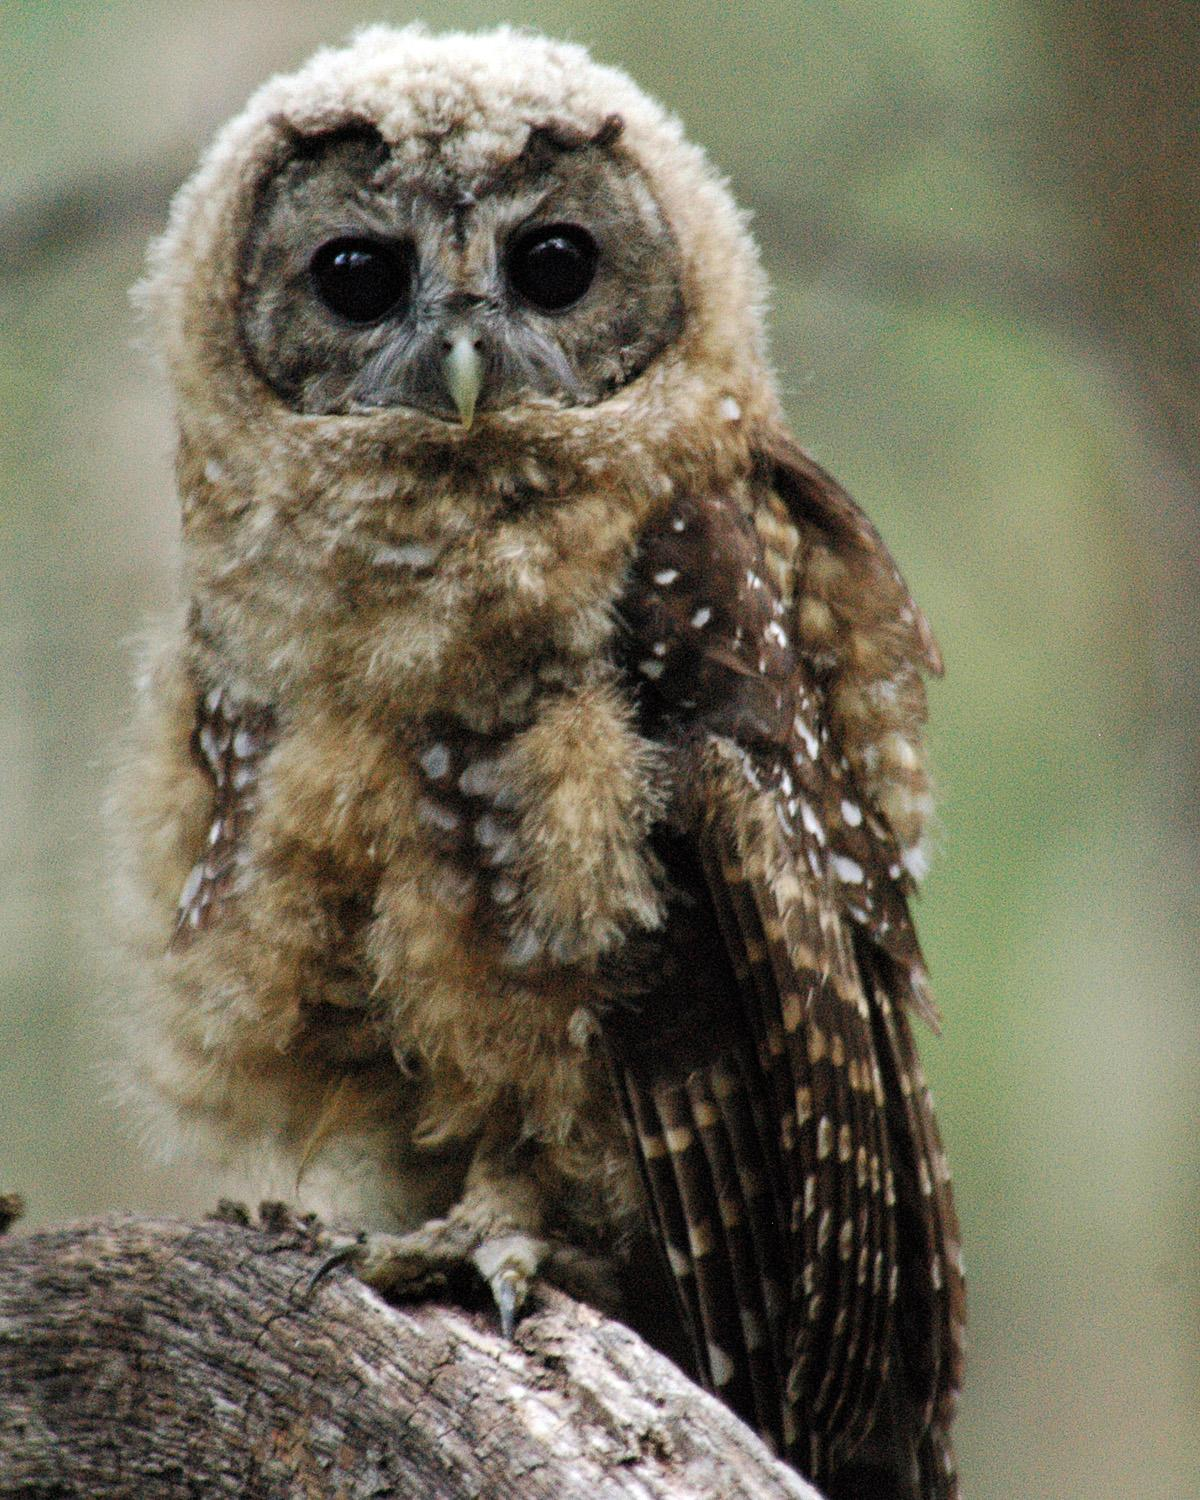 Spotted Owl Photo by Magill Weber